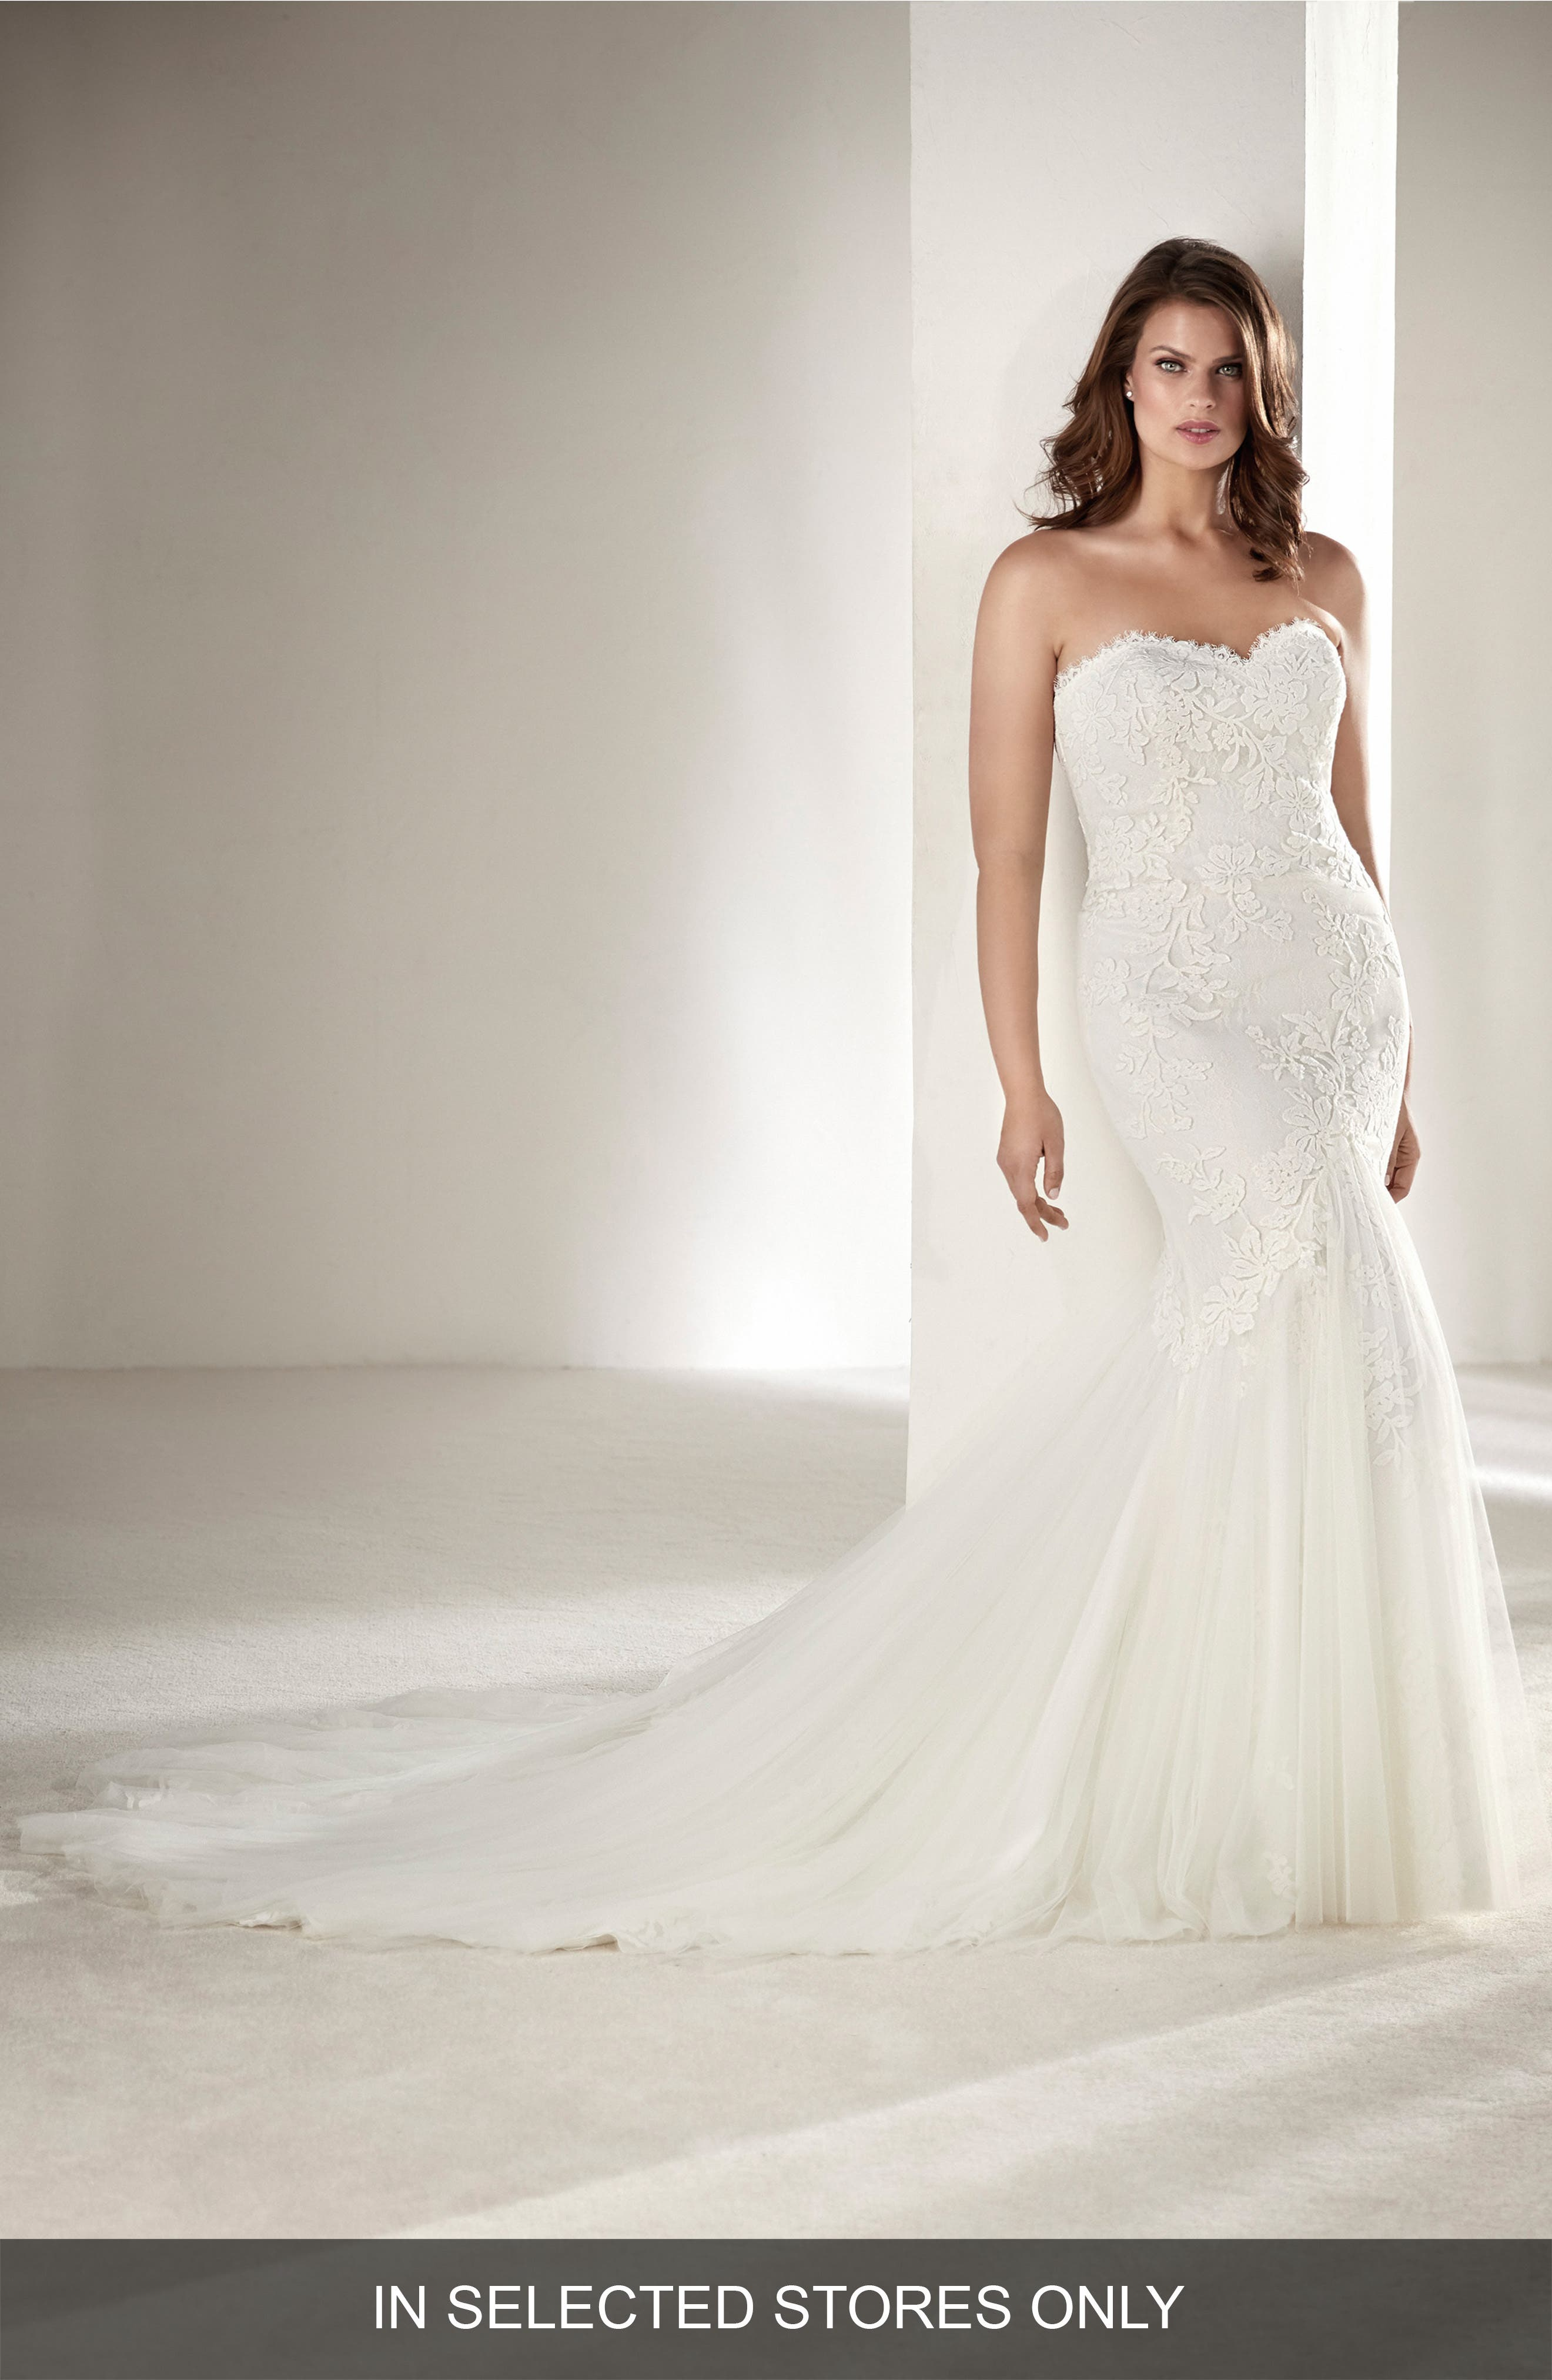 Drimea Strapless Mermaid Gown with Tulle Cape,                             Main thumbnail 1, color,                             Off White